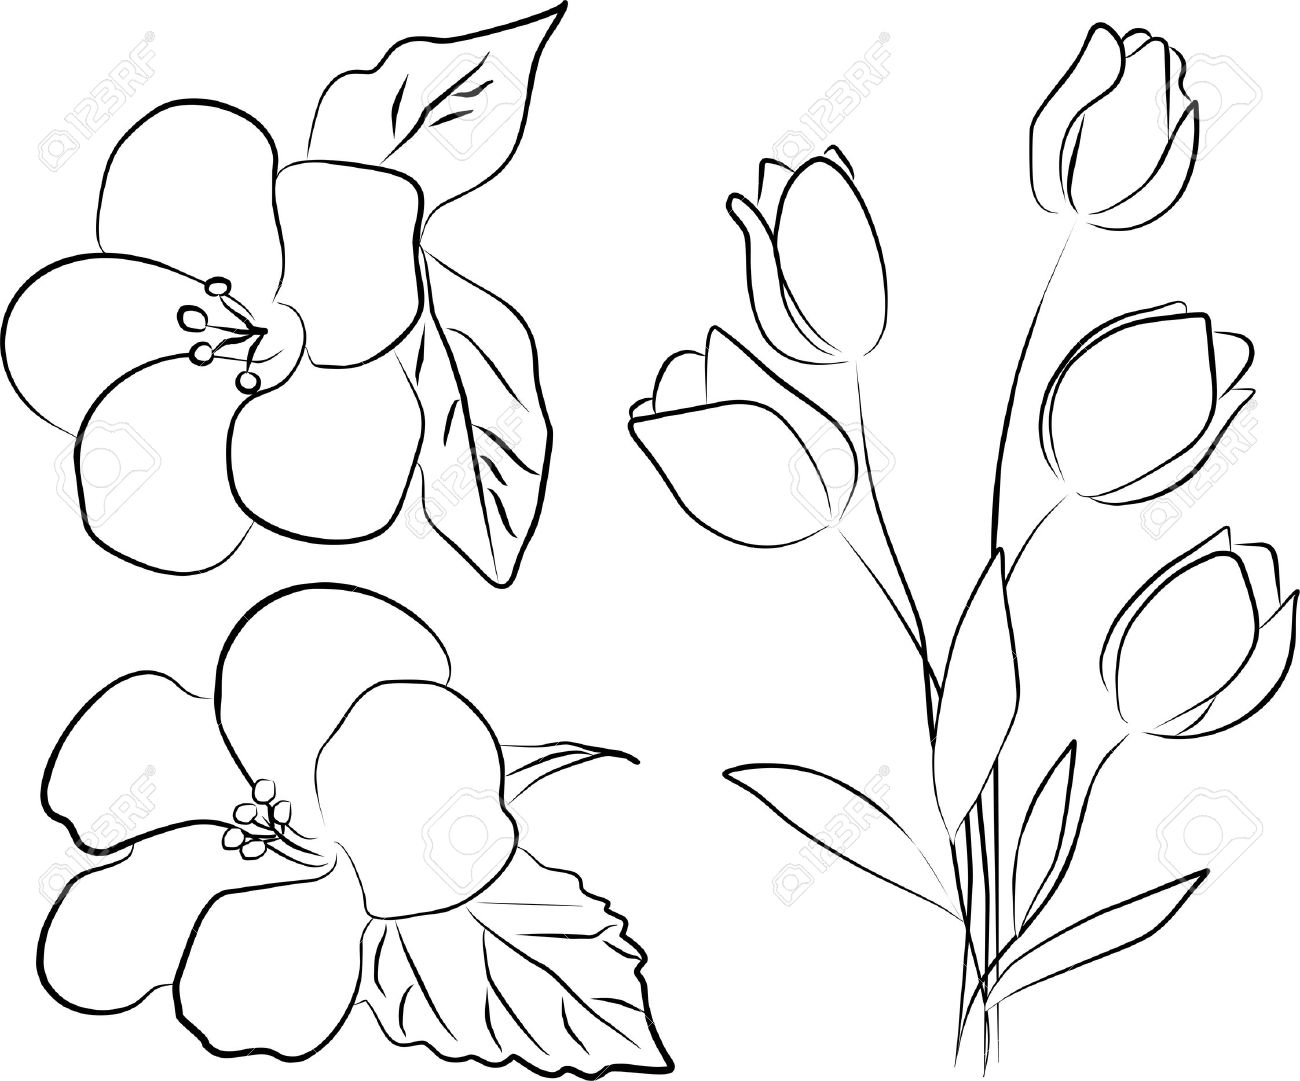 1300x1081 Free Hand Flower Drawings Hand Draw Flowers Royalty Free Stock